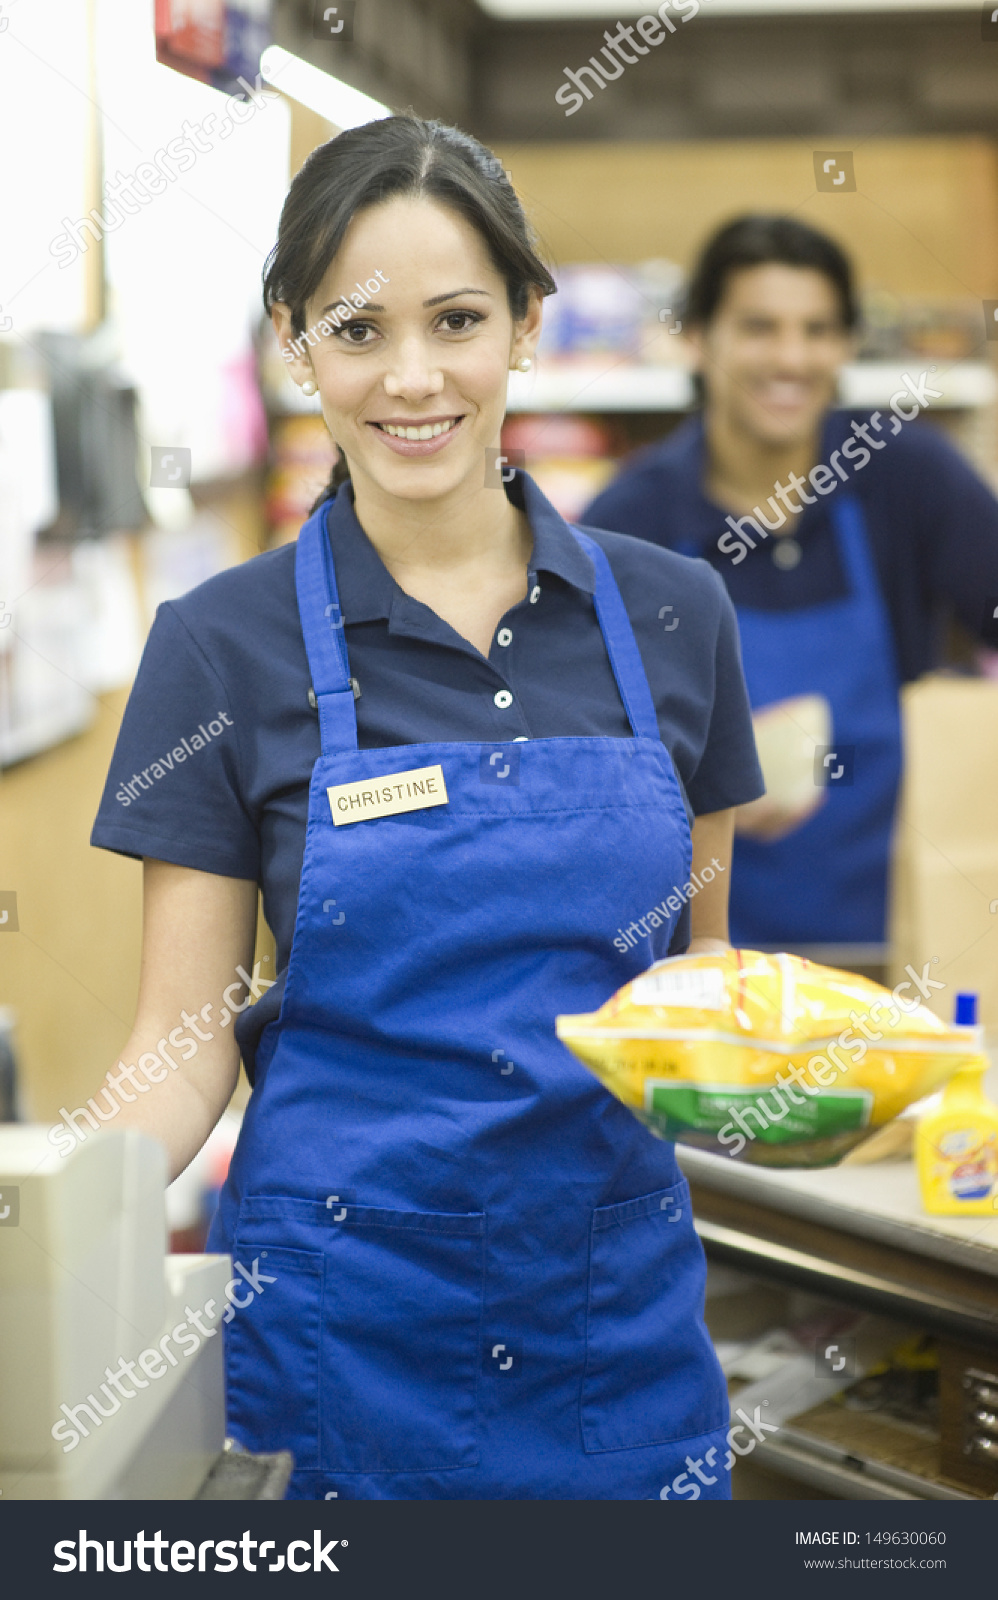 Blue apron workers